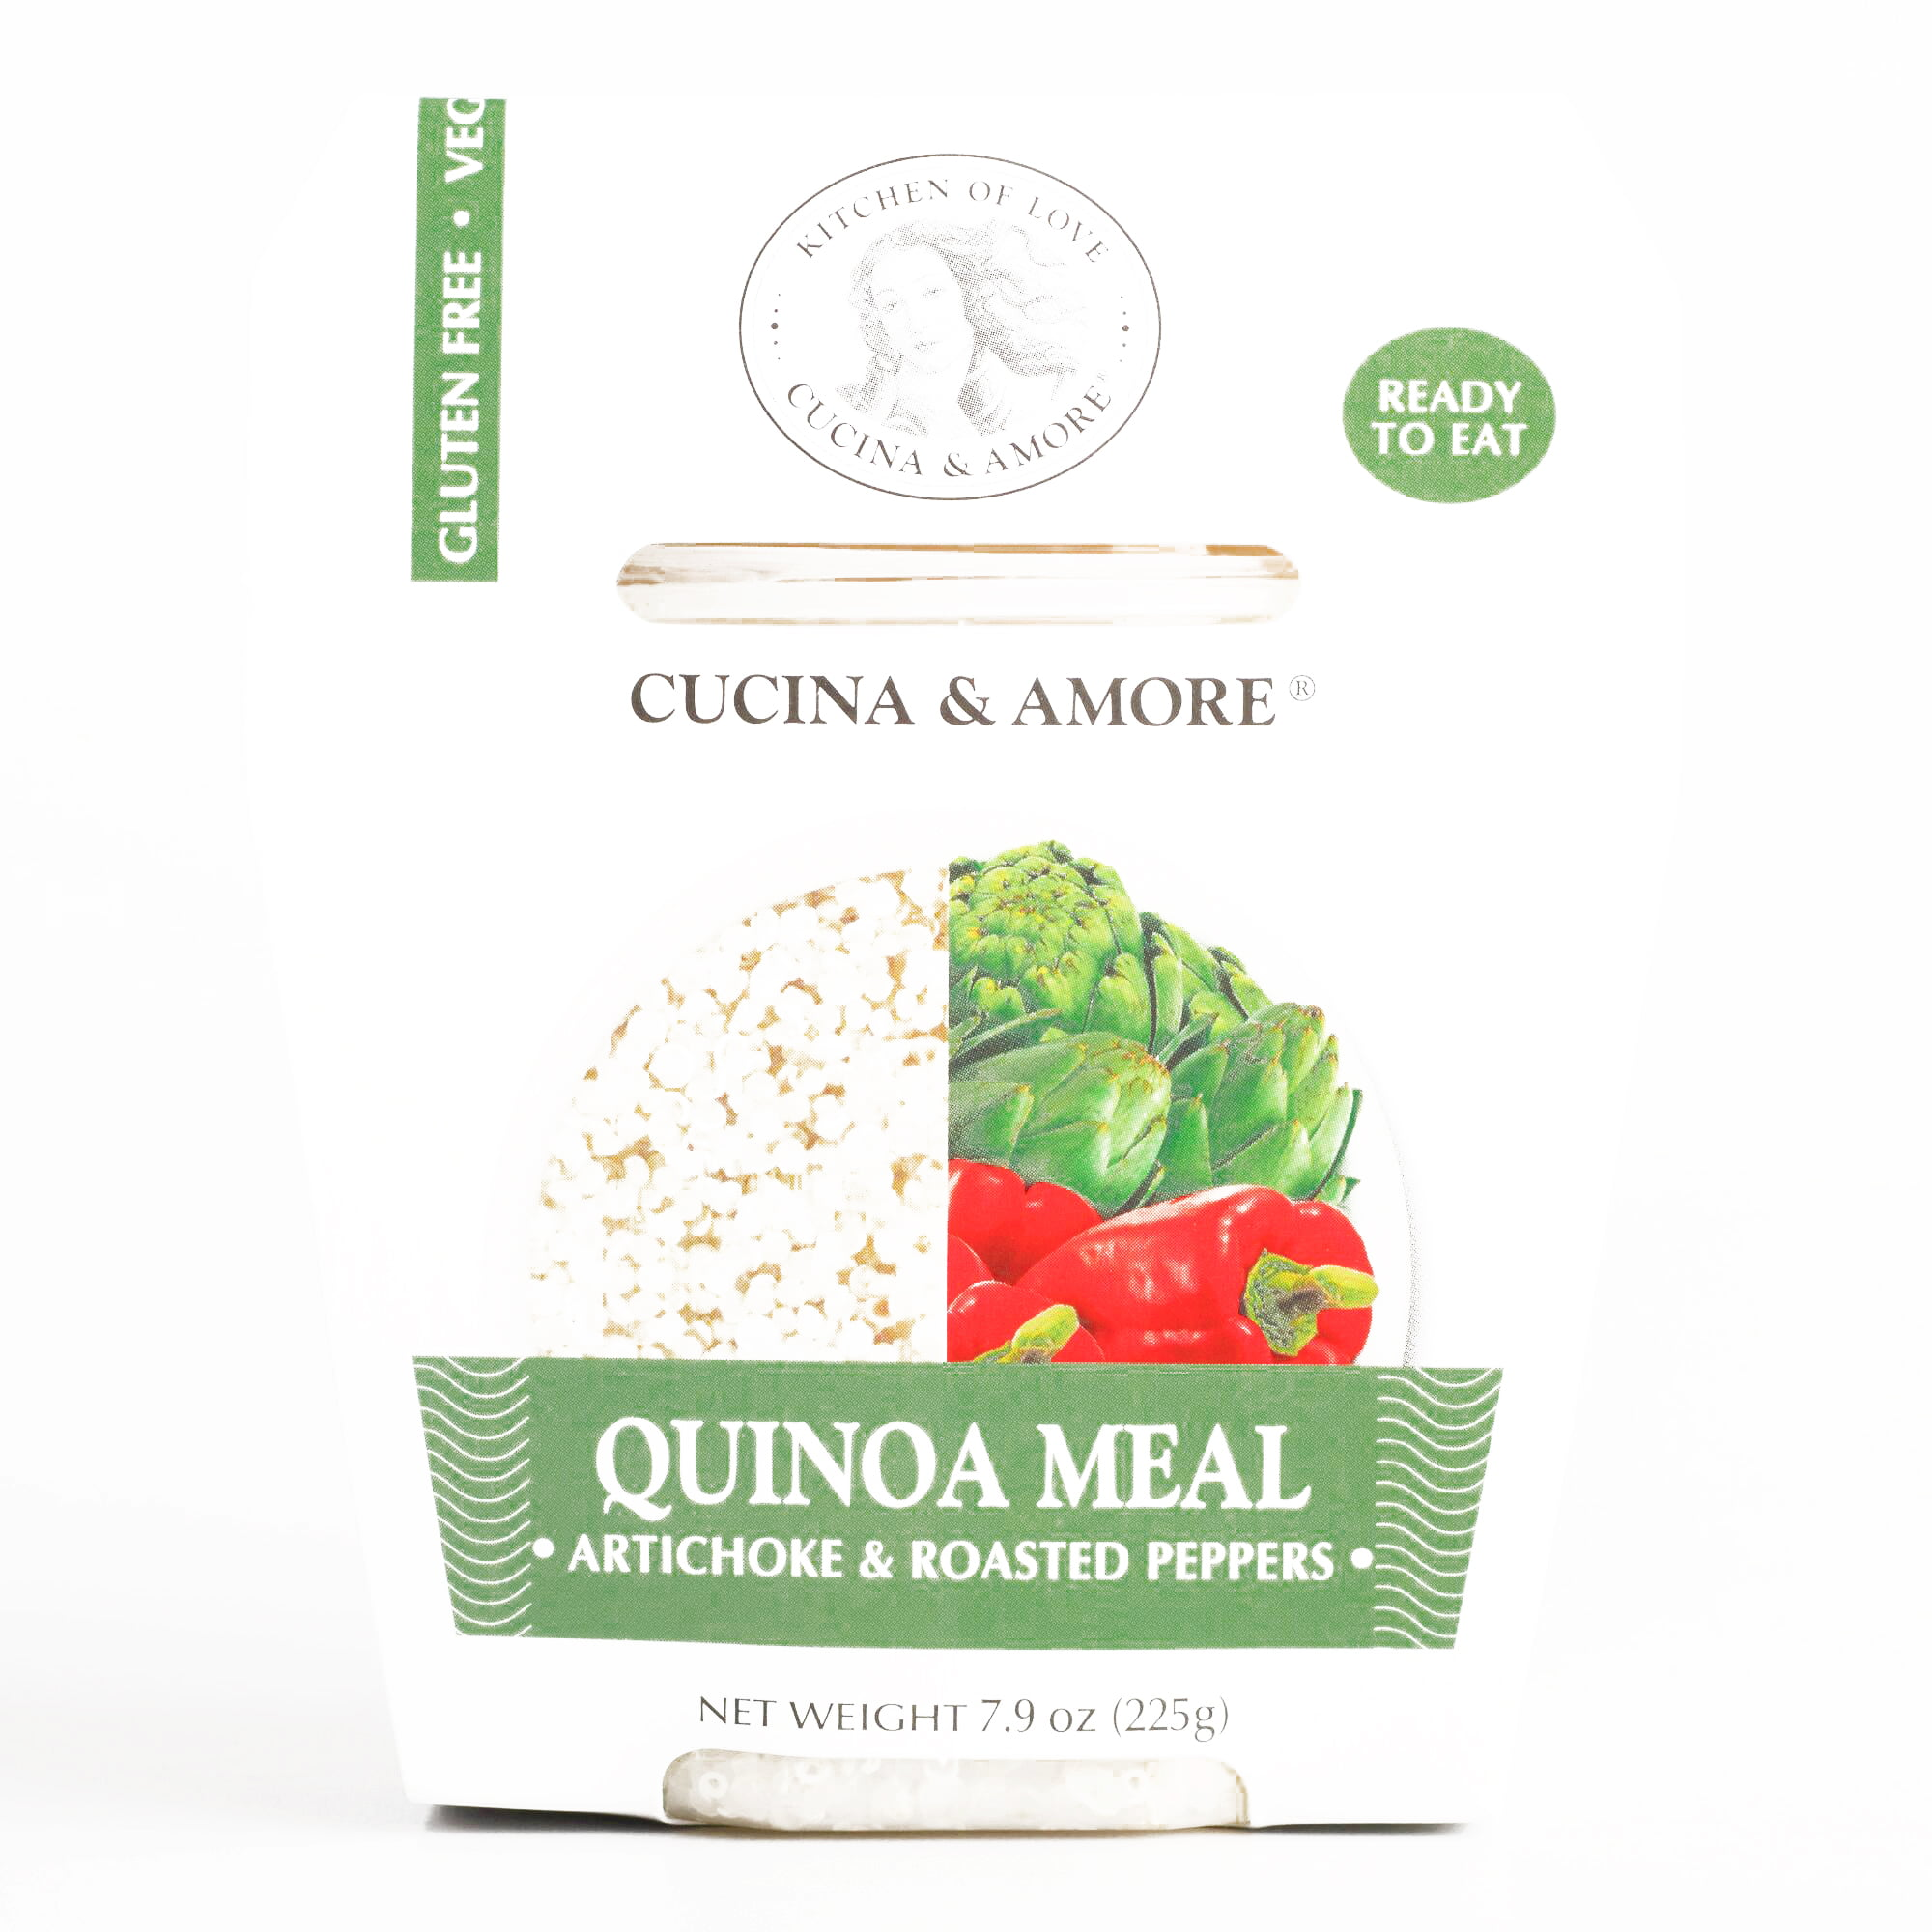 Cucina and Amore Artichoke and Roasted Peppers Quinoa Meal \t7.9 oz each (1 Item Per... by